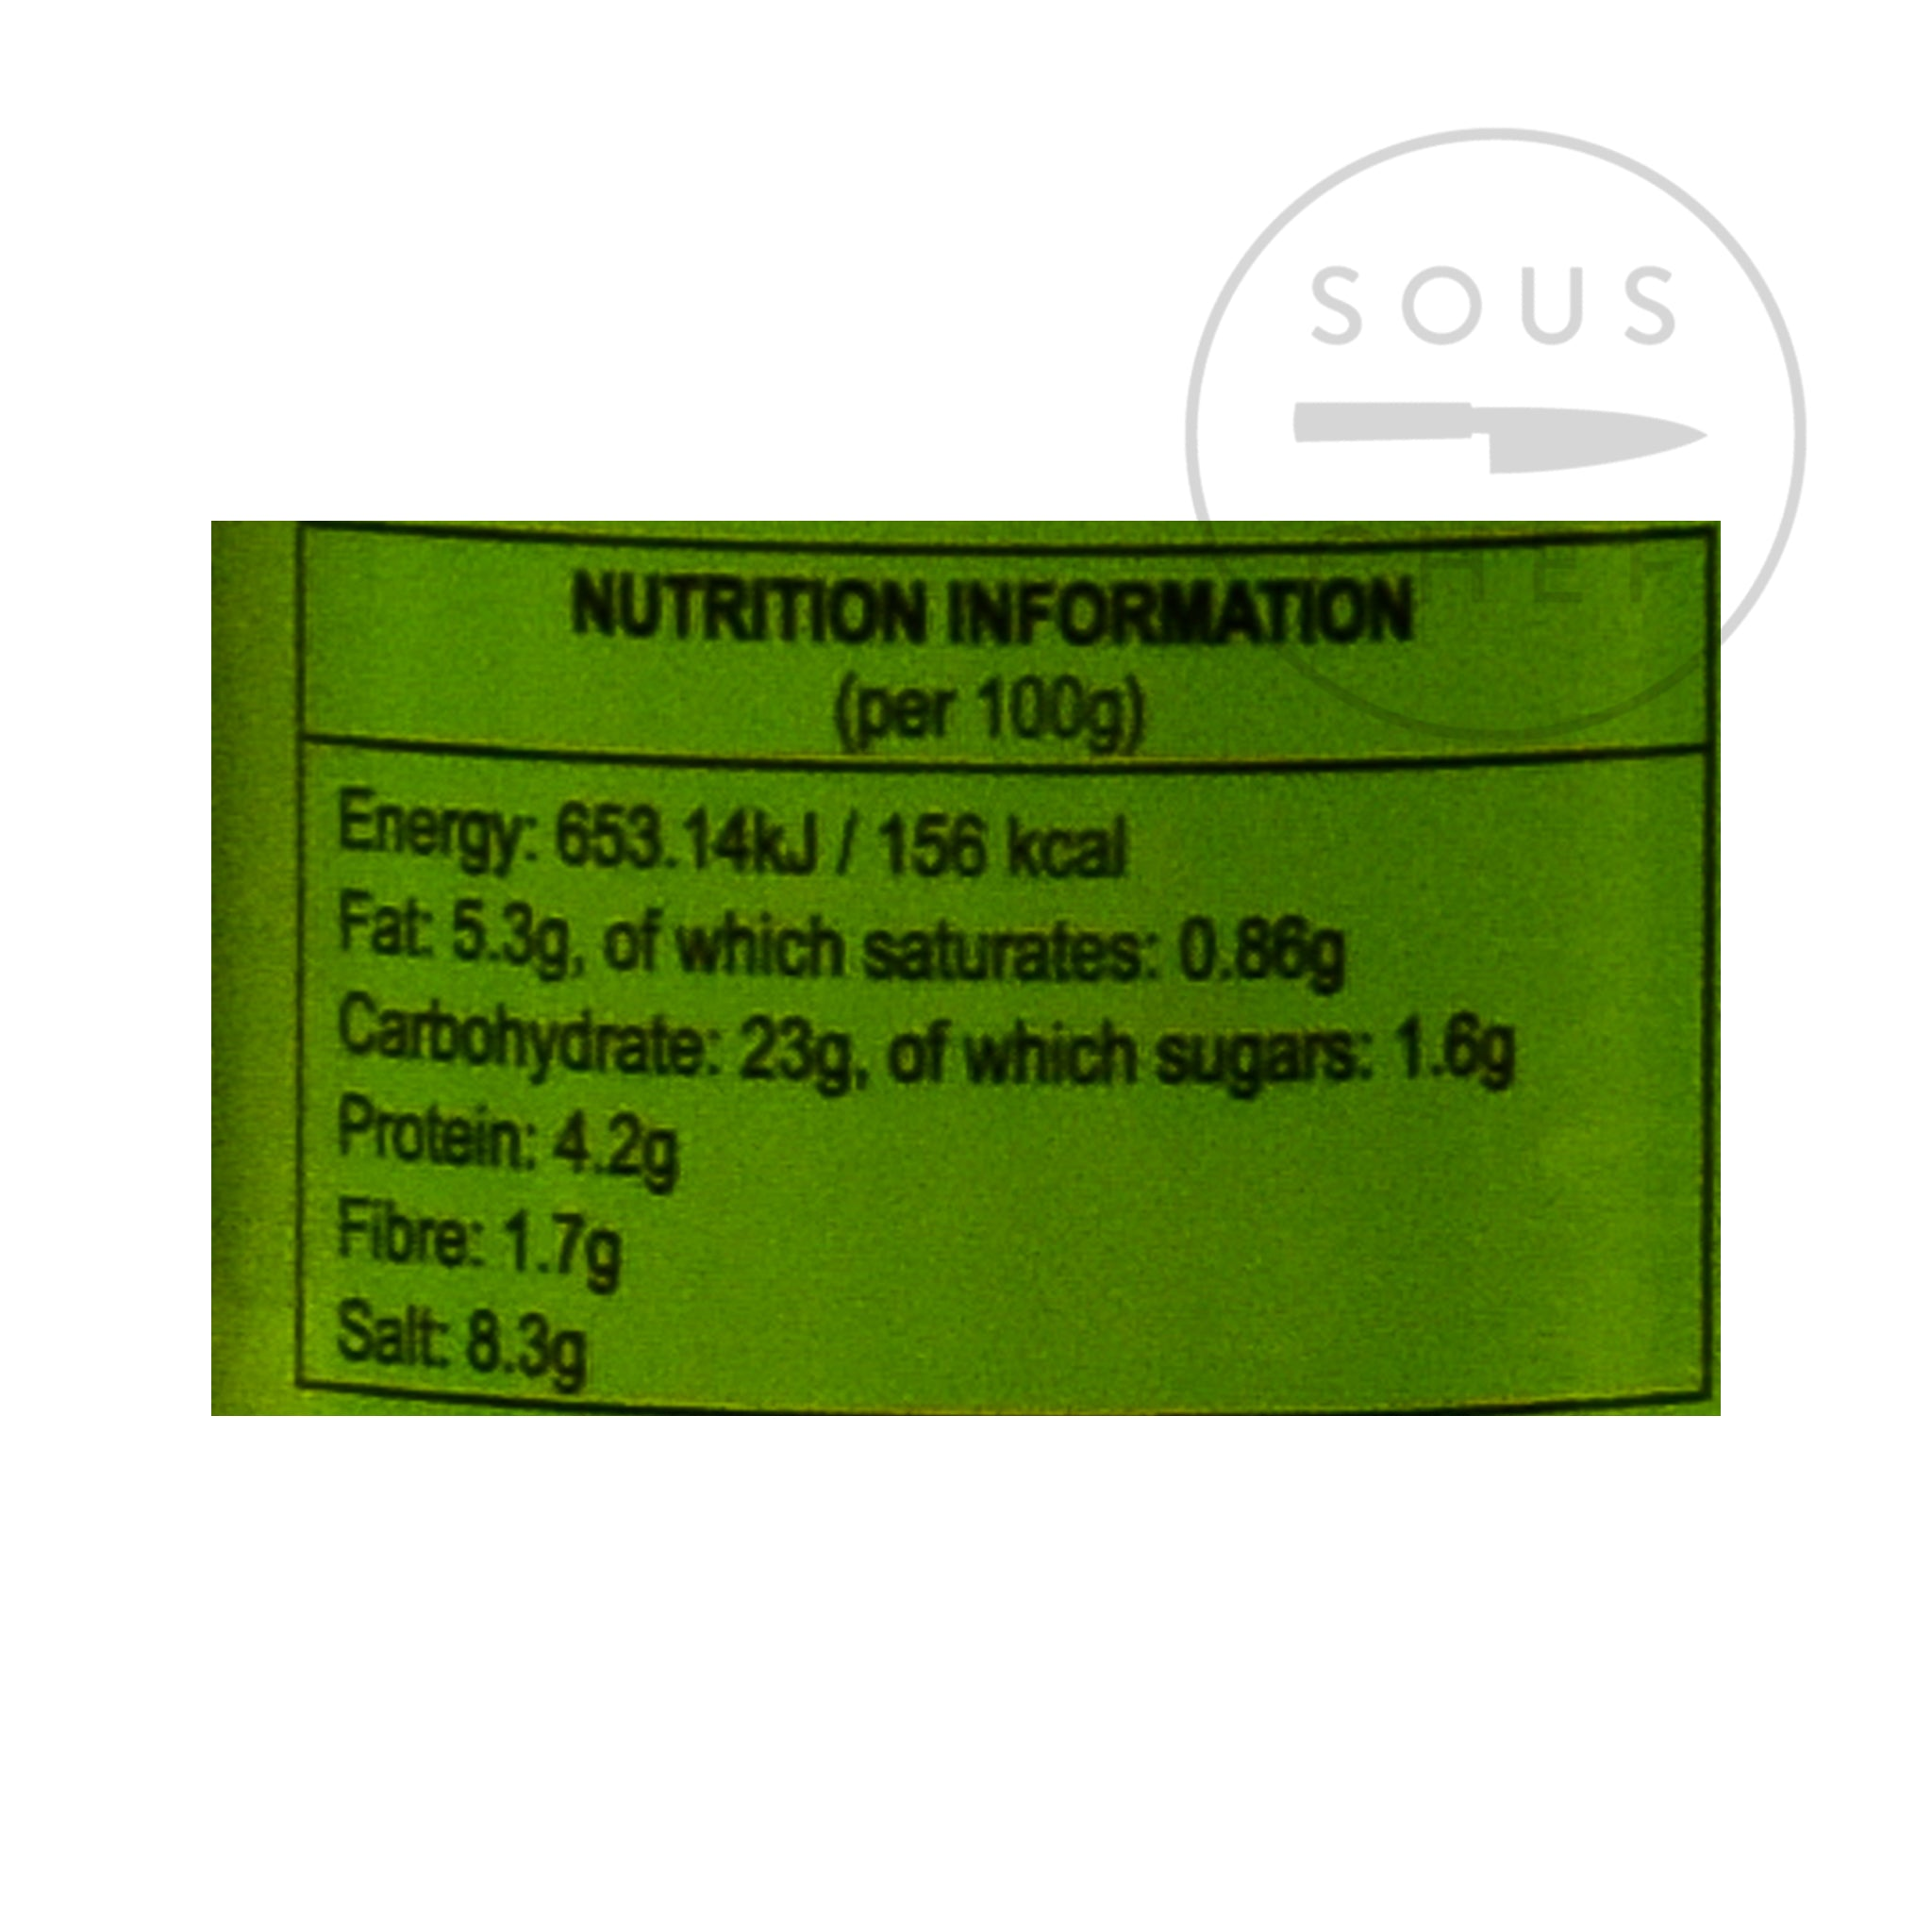 Ferns' Hot Curry Paste 380g nutritional information